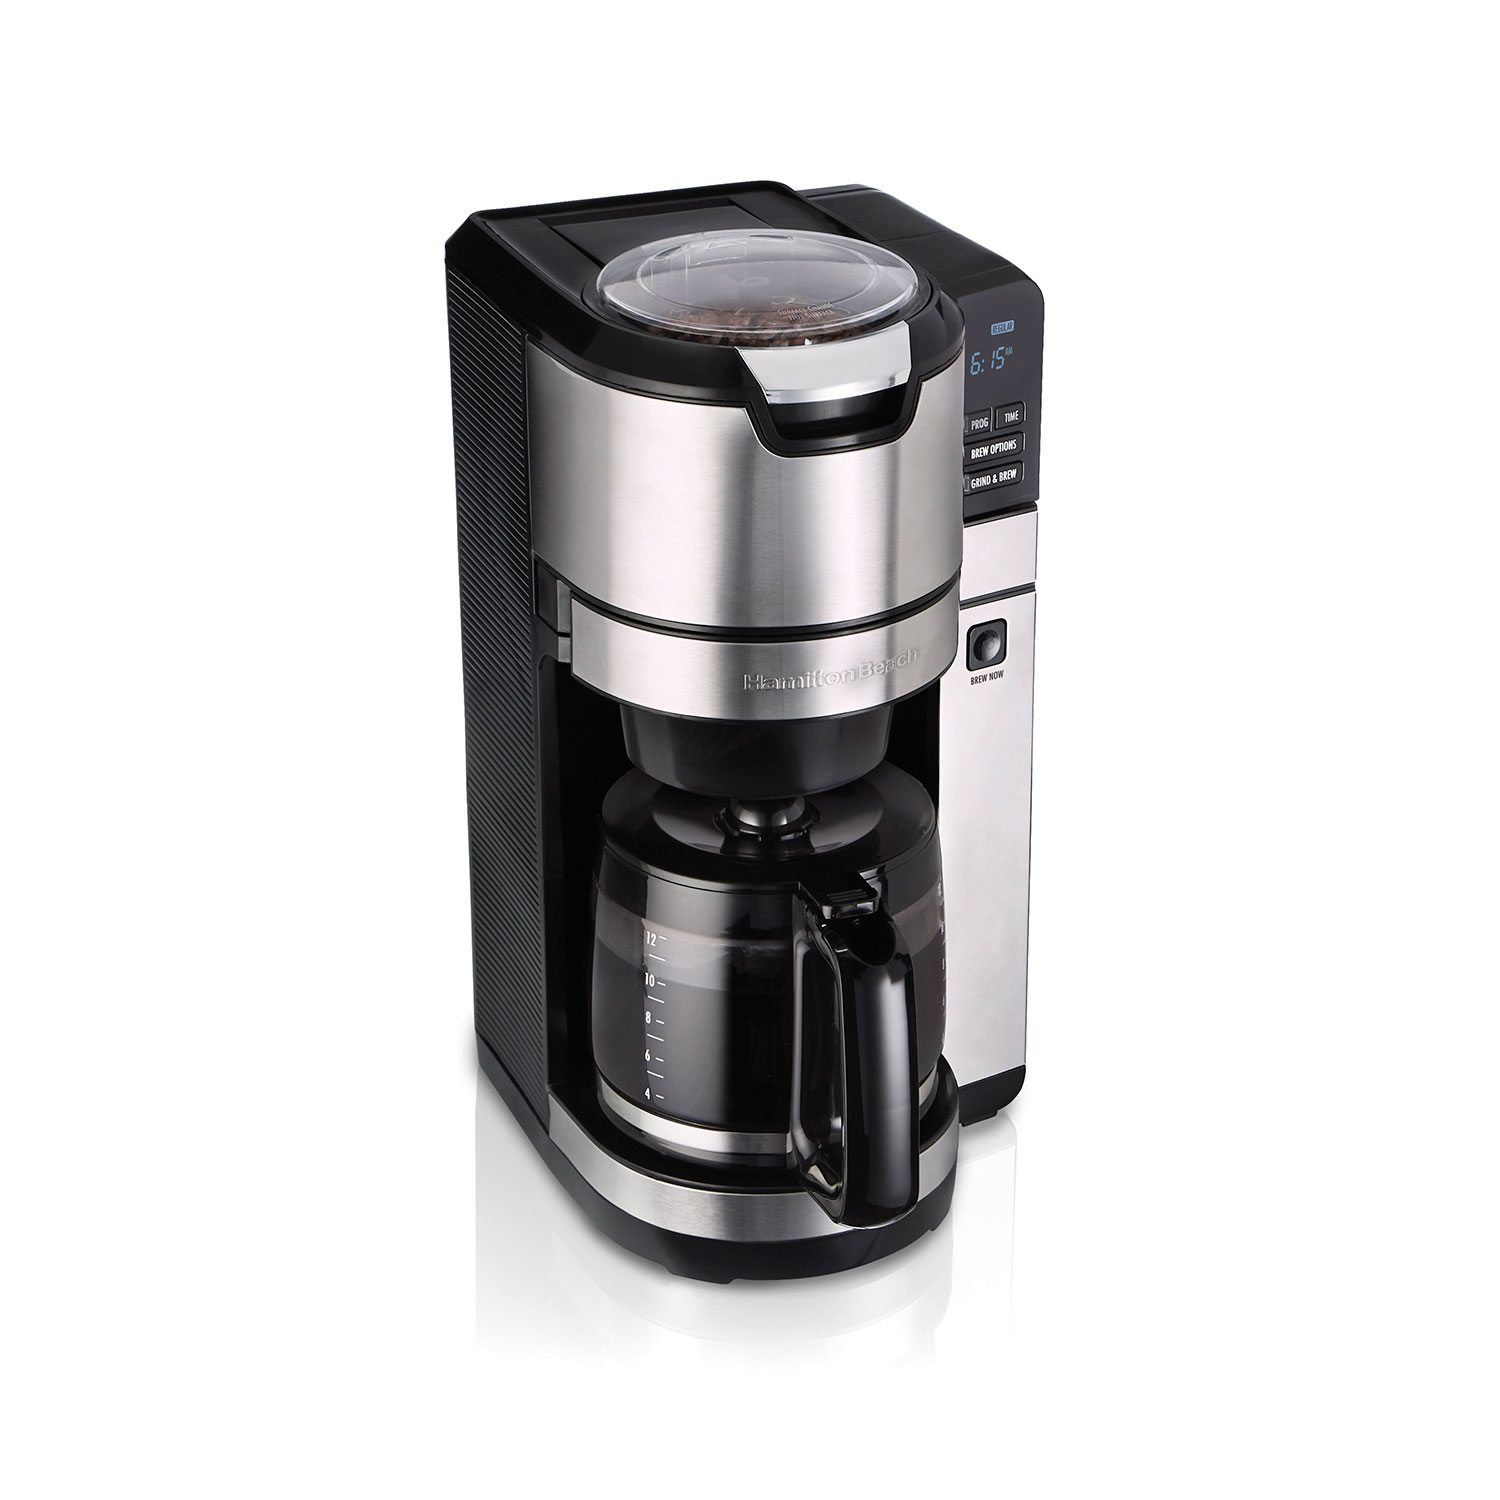 Programmable Grind and Brew 12 Cup Coffee Maker with Built-in Self-Rinsing Coffee Grinder (Black) (45505)